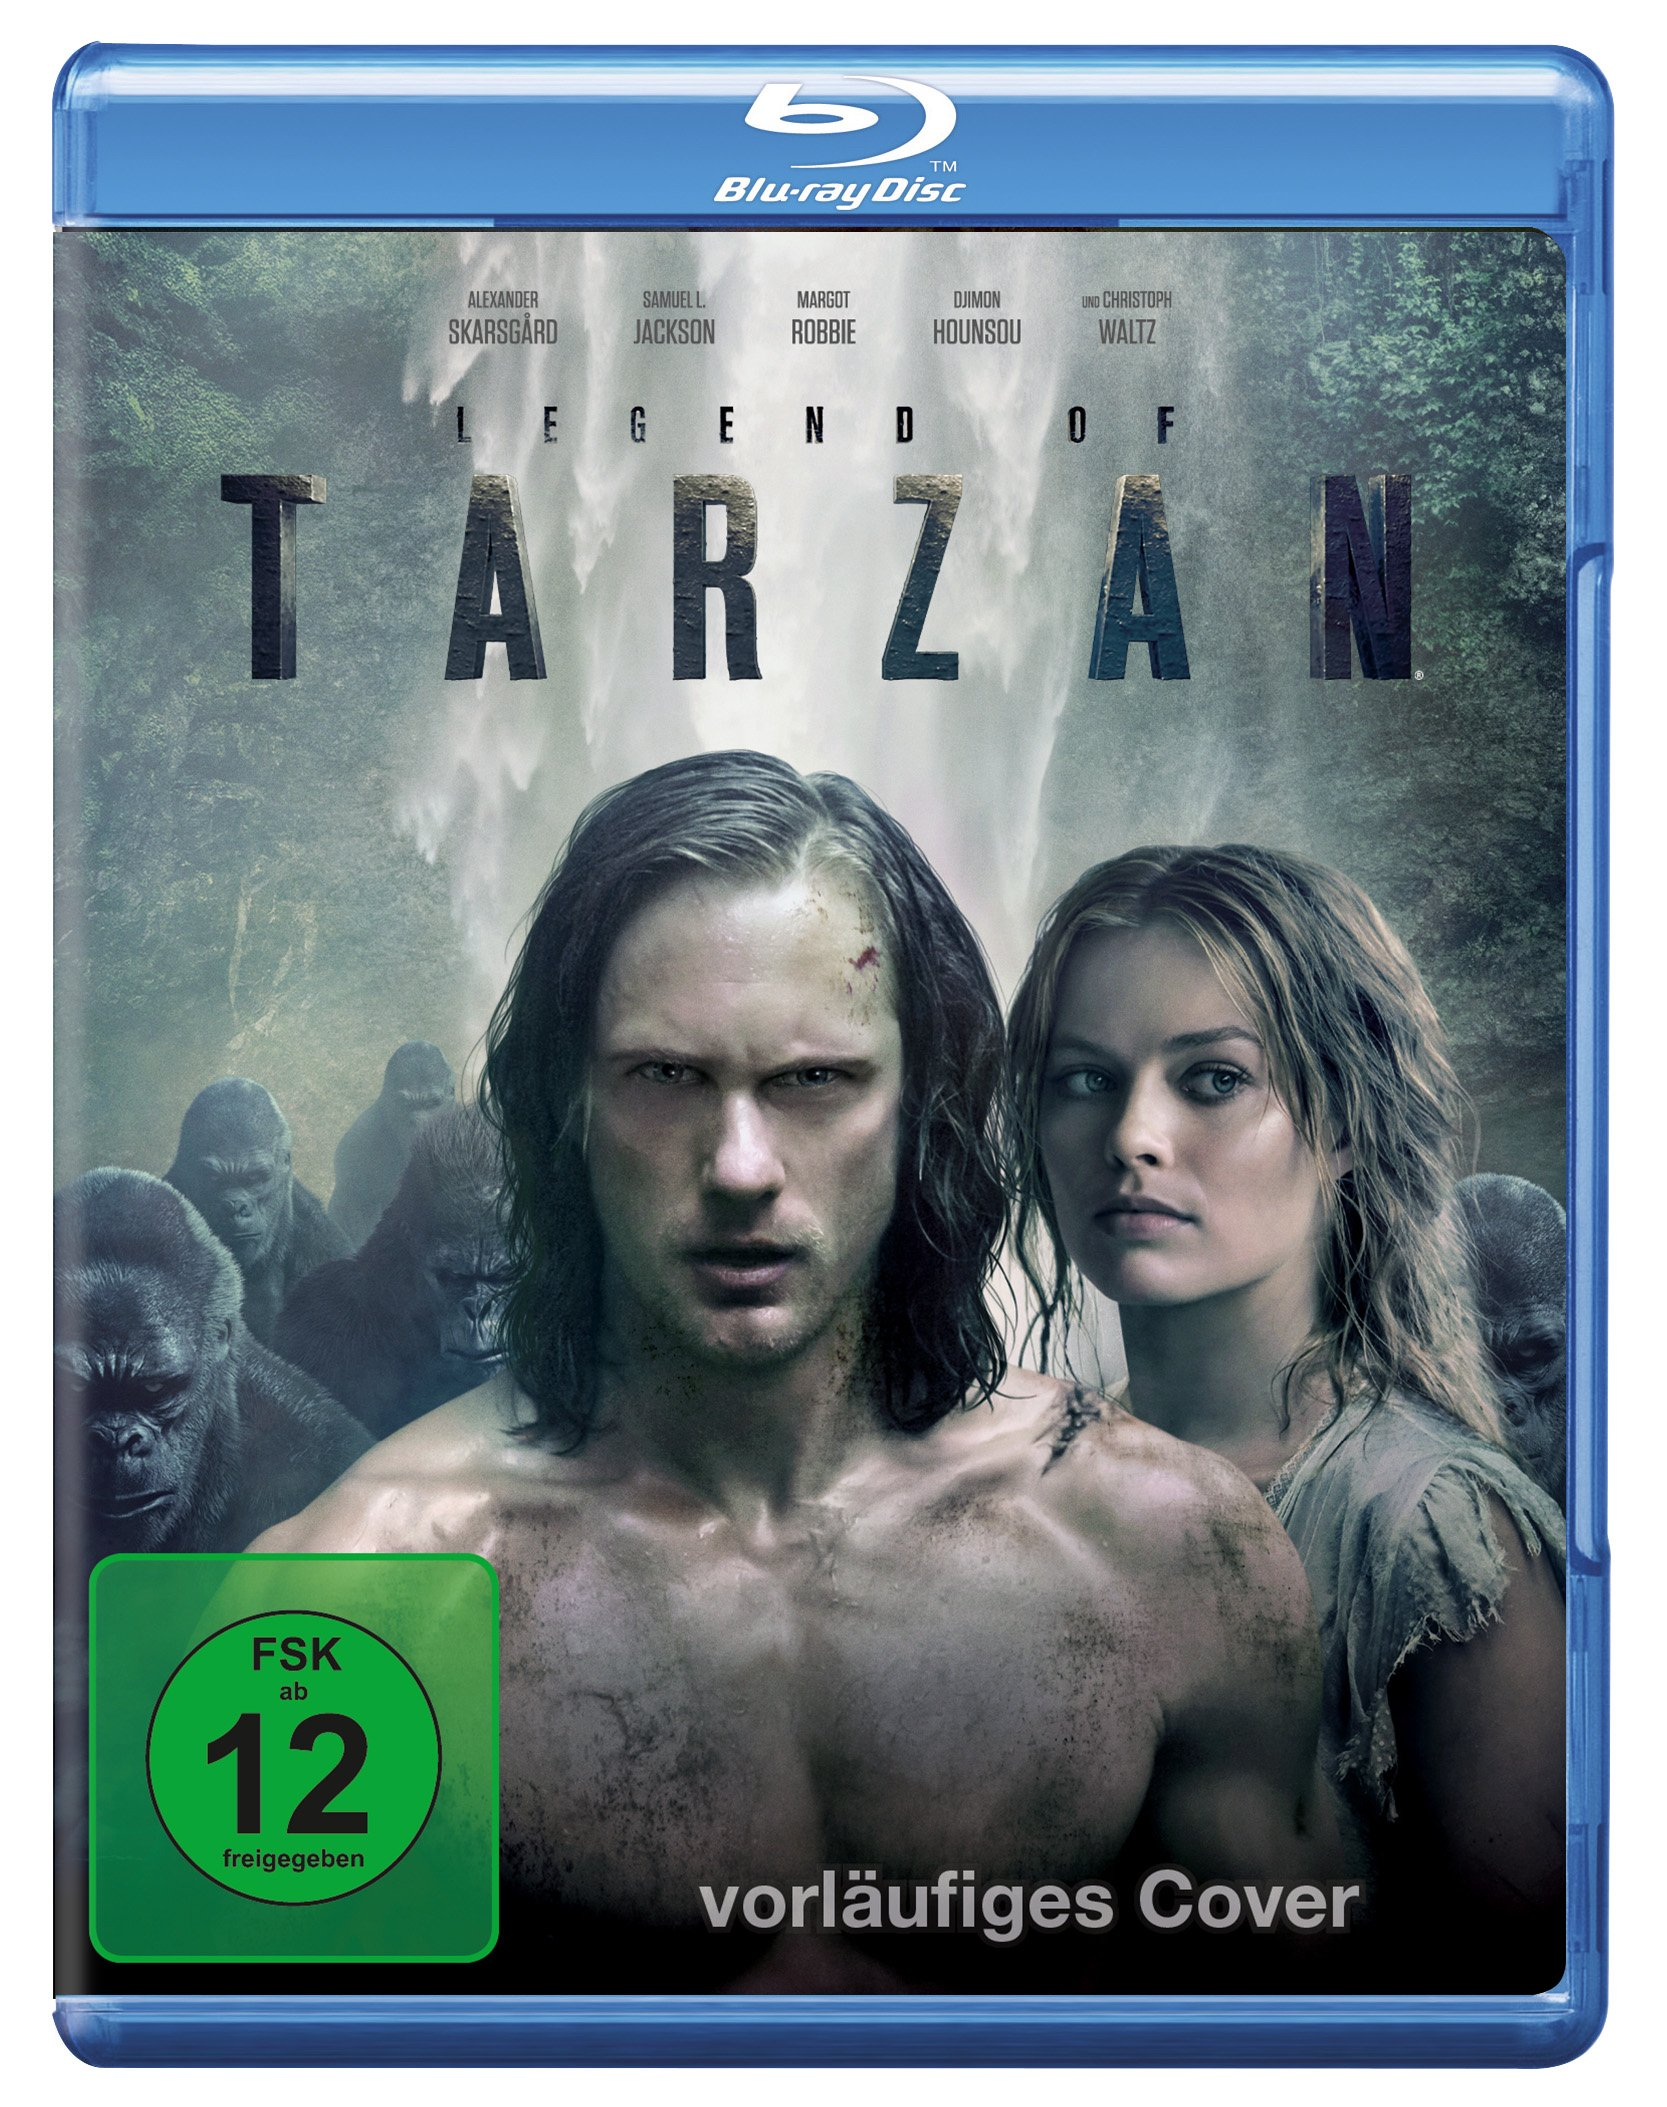 : Legend of Tarzan Webrip Ld German x264-PsO